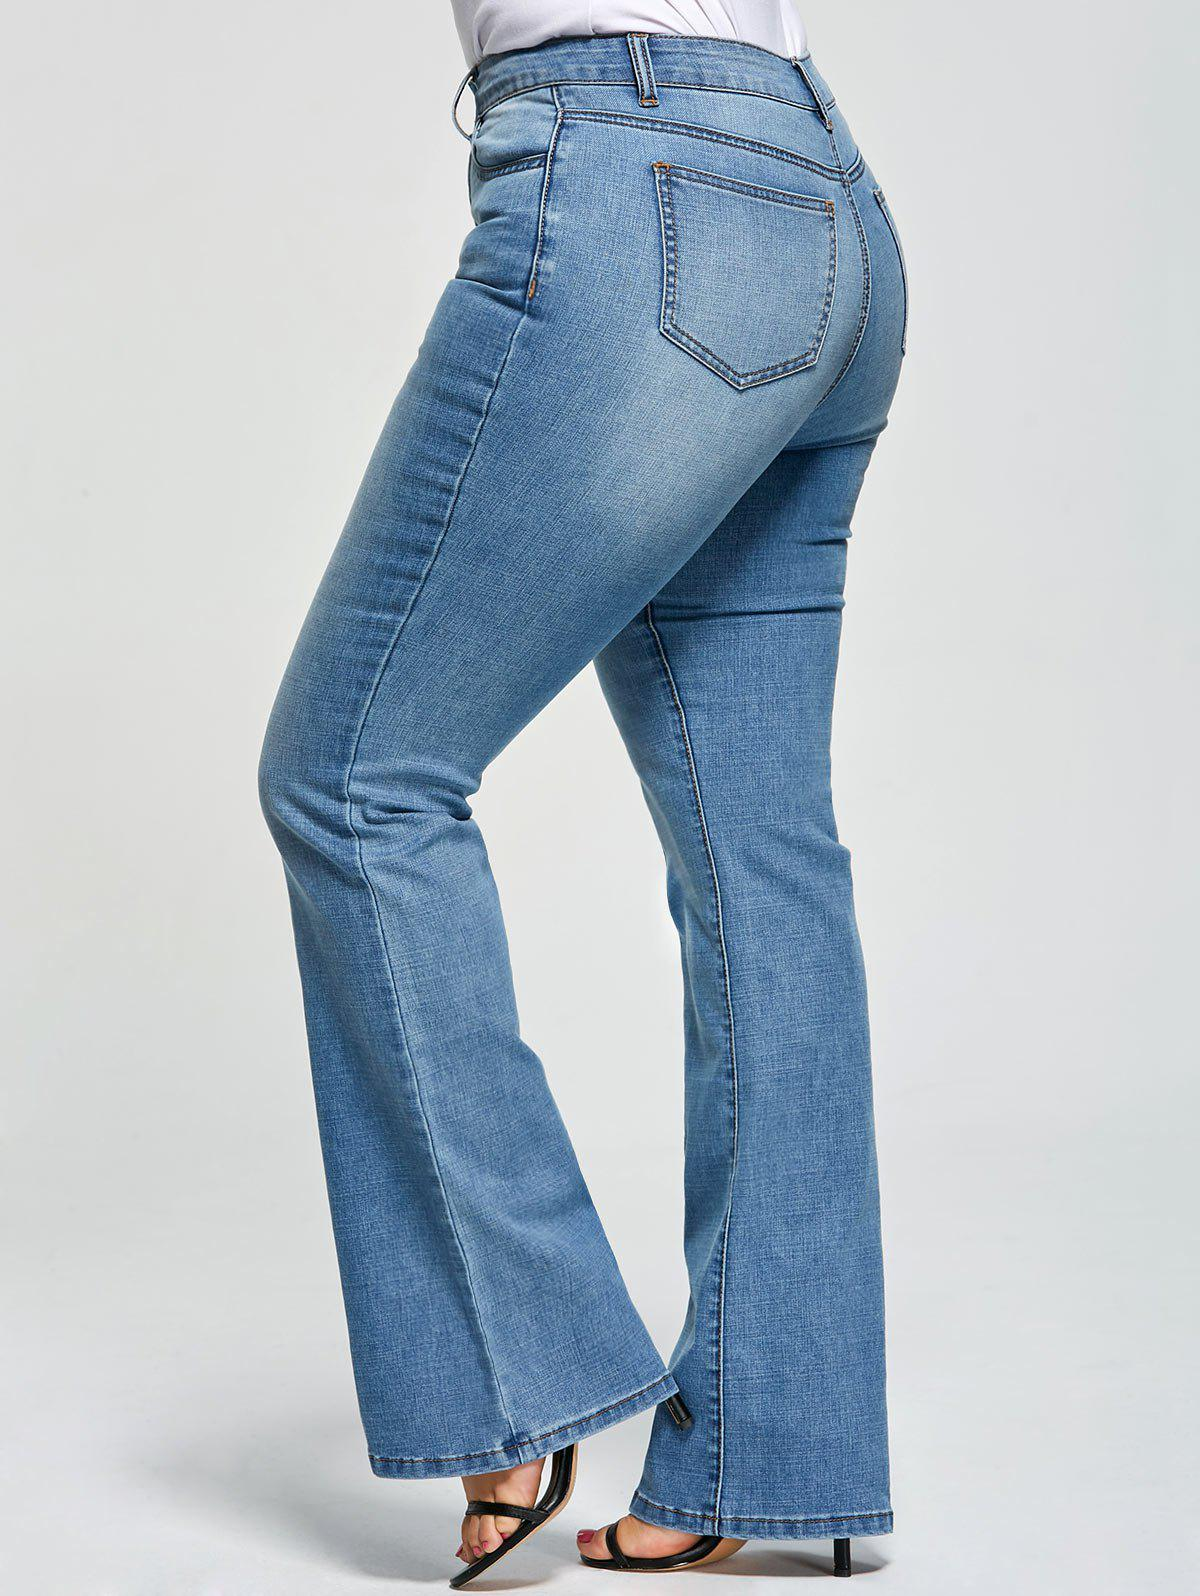 Plus Size Five Pockets Denim Flare JeansWOMEN<br><br>Size: 3XL; Color: DENIM BLUE; Style: Fashion; Length: Normal; Material: Polyester,Spandex; Fit Type: Regular; Waist Type: Mid; Closure Type: Zipper Fly; Pattern Type: Solid; Embellishment: Pockets; Pant Style: Flare Pants; Weight: 0.3900kg; Package Contents: 1 x Jeans;